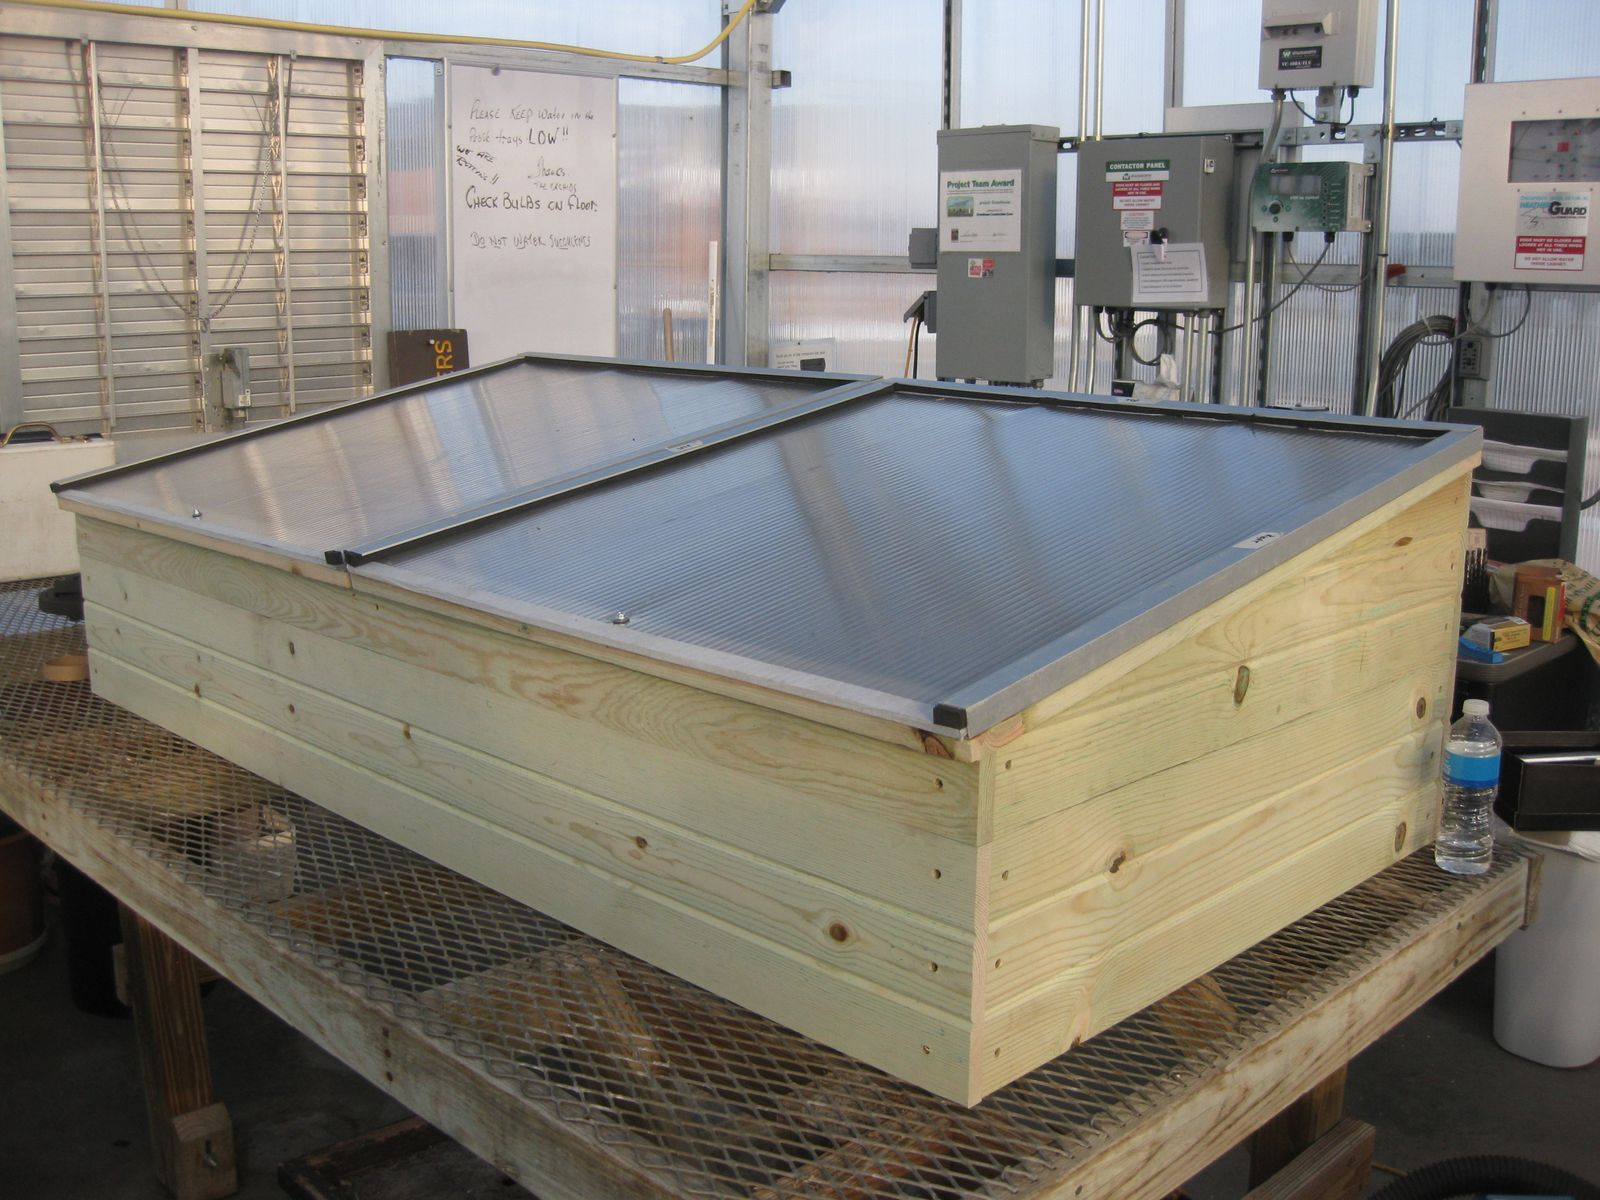 The completed cold frame will be installed outside the greenhouse at Lowe Park and used by Linn County Master Gardeners.